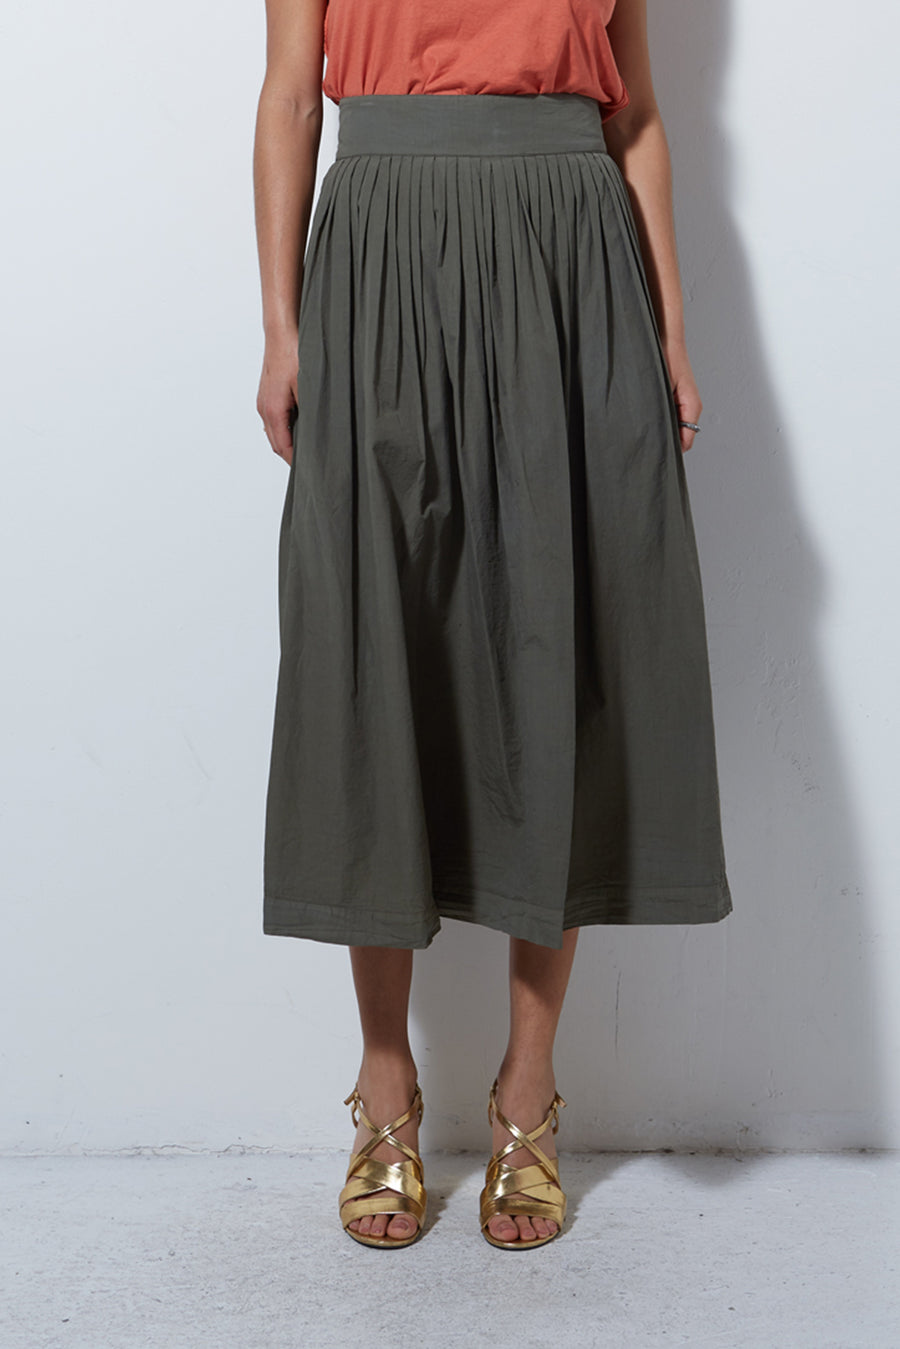 DOHENY SKIRT, ARMY